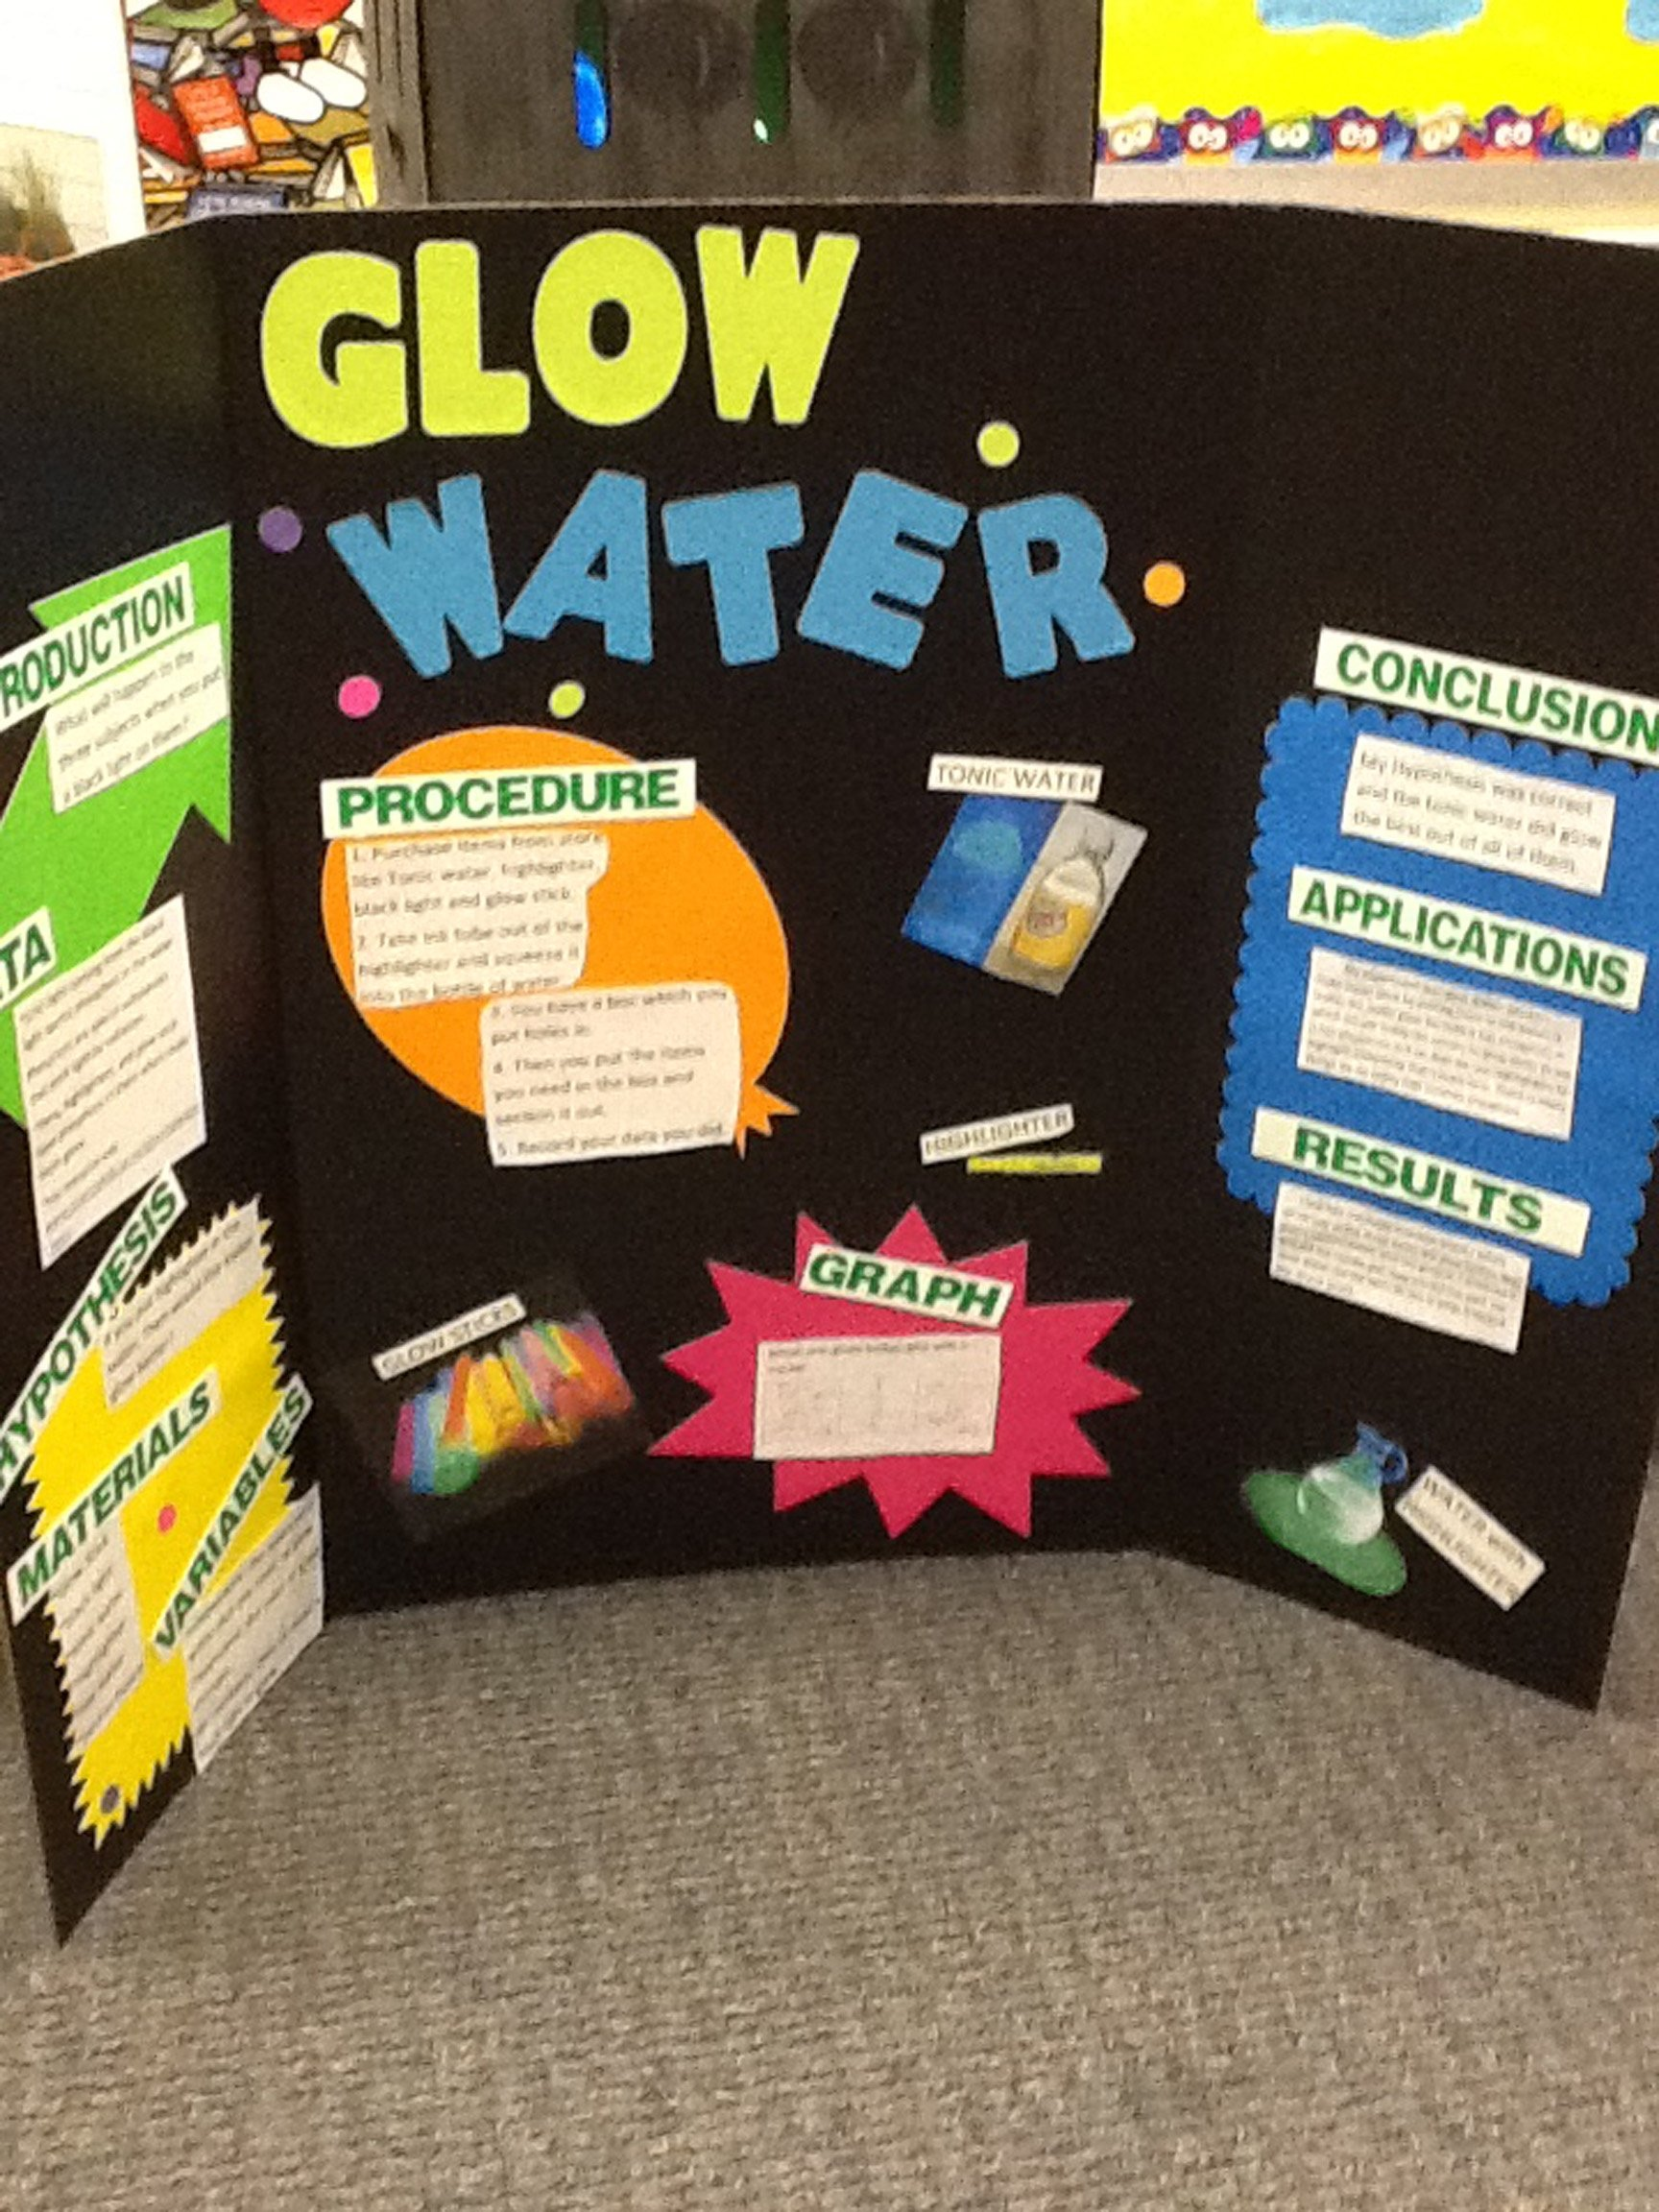 10 Elegant Science Fair Projects Ideas For 6Th Grade sixth grade science fair projects coursework academic service 7